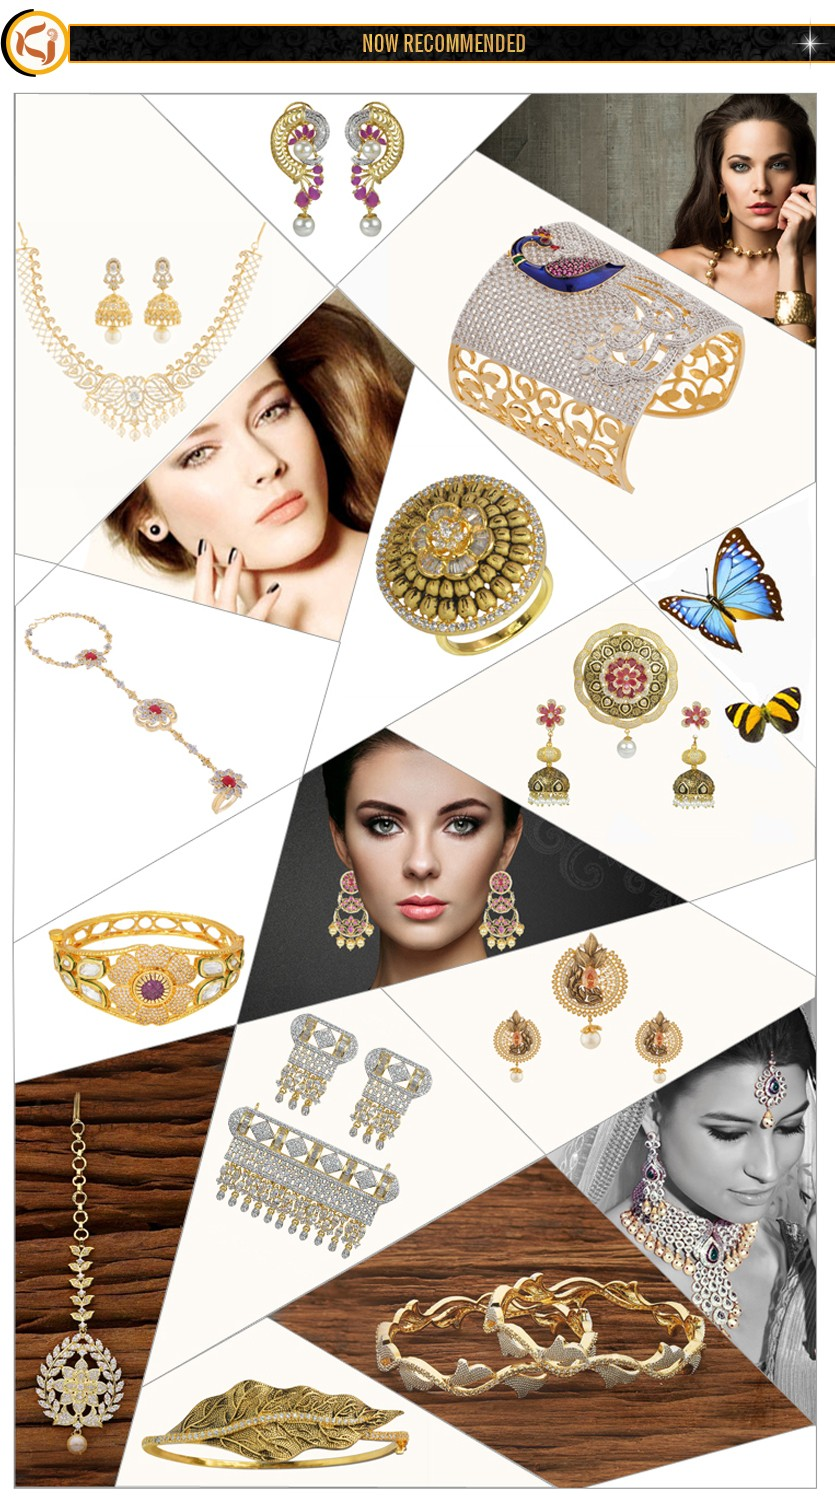 Fashion Earrings Wholesalers & Manufacturers - 8336